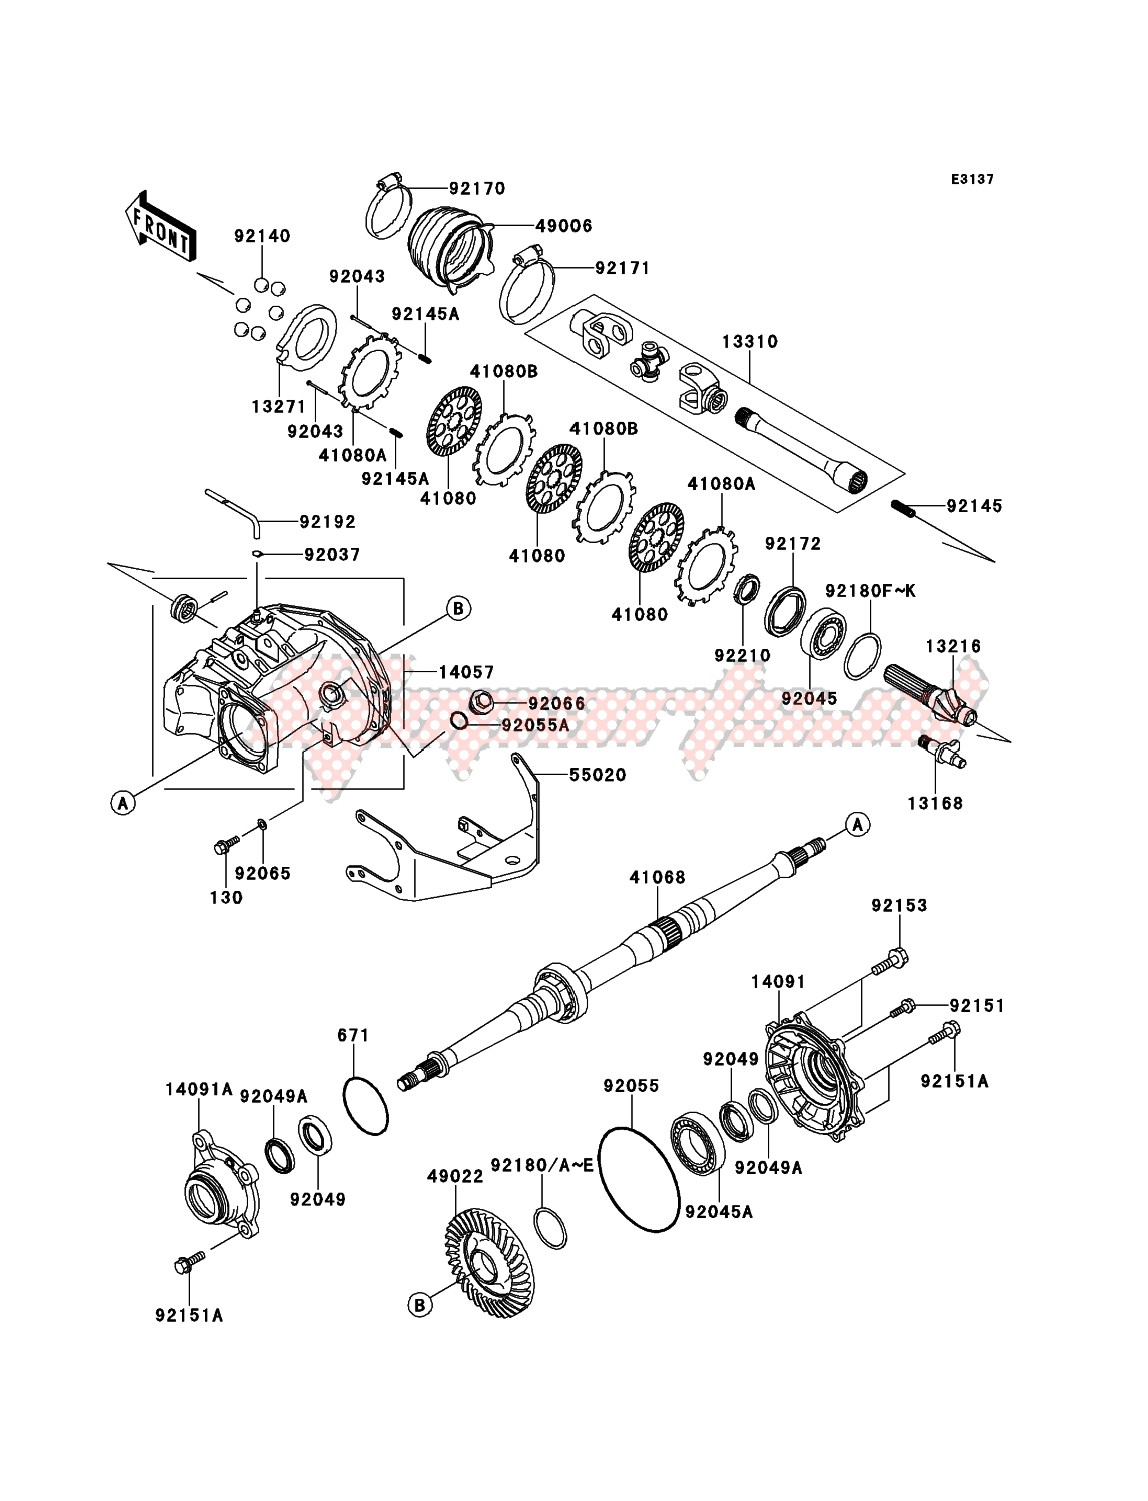 Engine-Drive Shaft-Rear